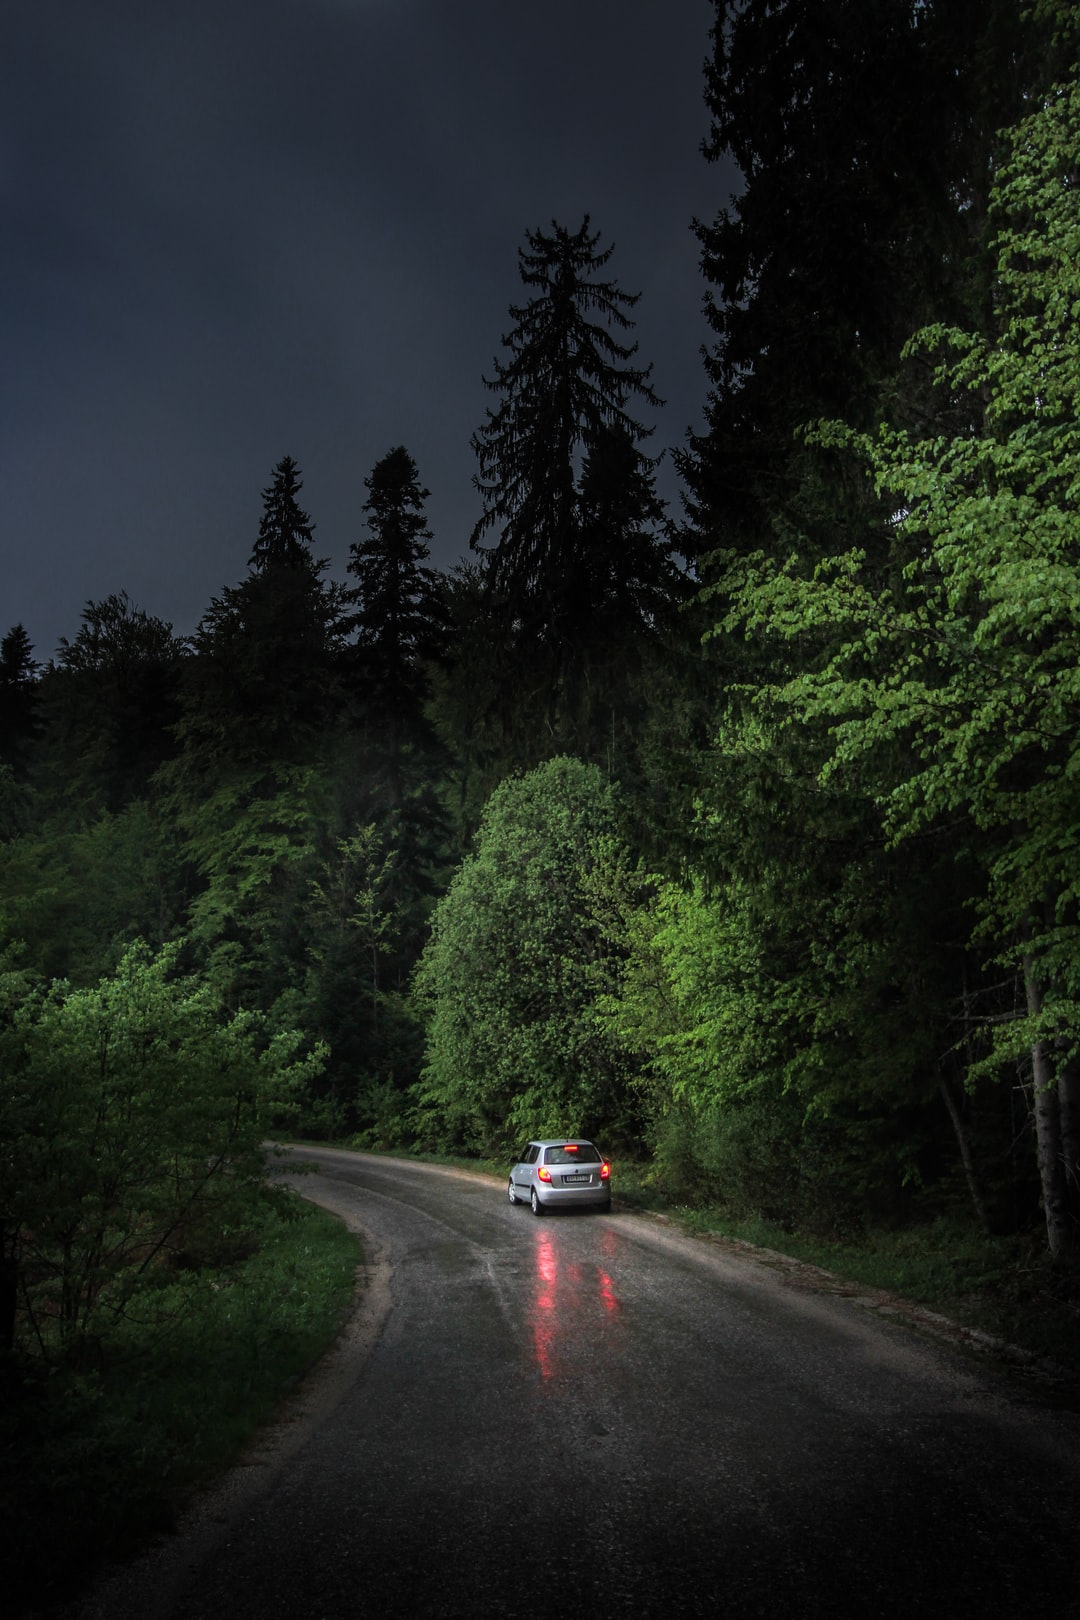 Roaming the hidden, spooky forests at Tara National park in western Serbia, with just enough early moonlight to catch the glimpses of the rare tree species Pančićeva omorika endemic to this mountain. Discover more photos like this > instagram.com/valentinsalja Driving the car > www.instagram.com/jelena.jaranovic